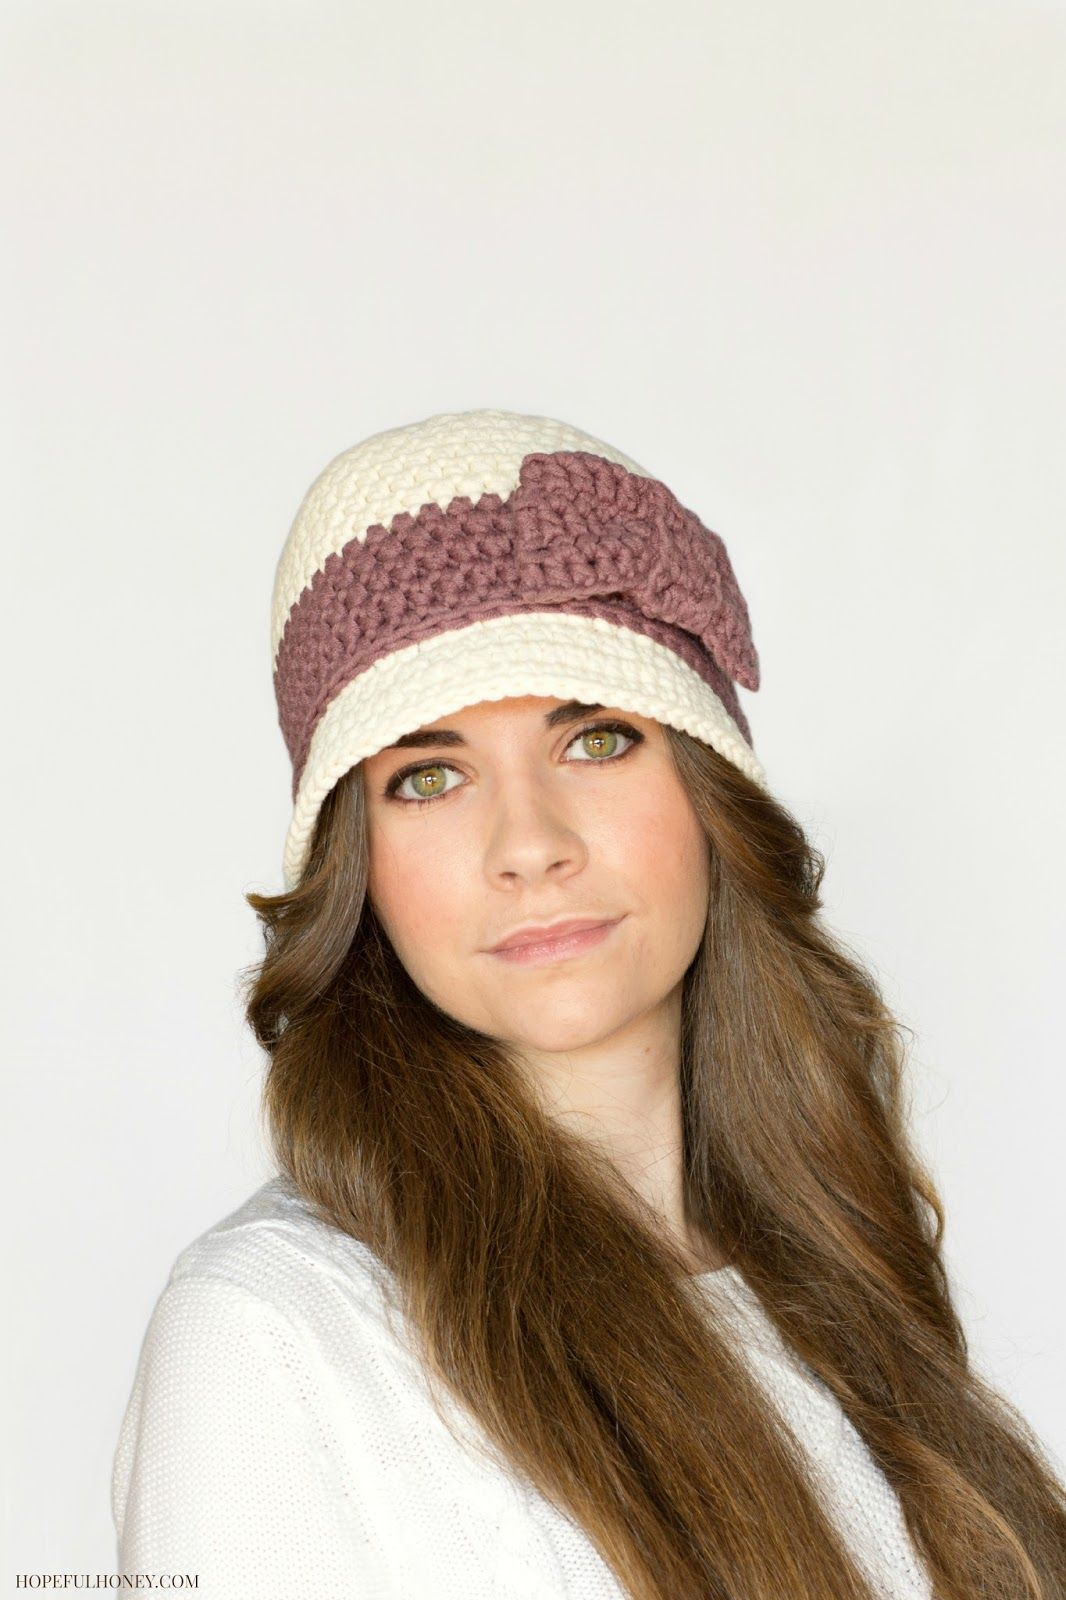 Downton Abbey Knitting Patterns : Downton Abbey Inspired Cloche Hat Crochet Pattern Hat crochet patterns, Clo...